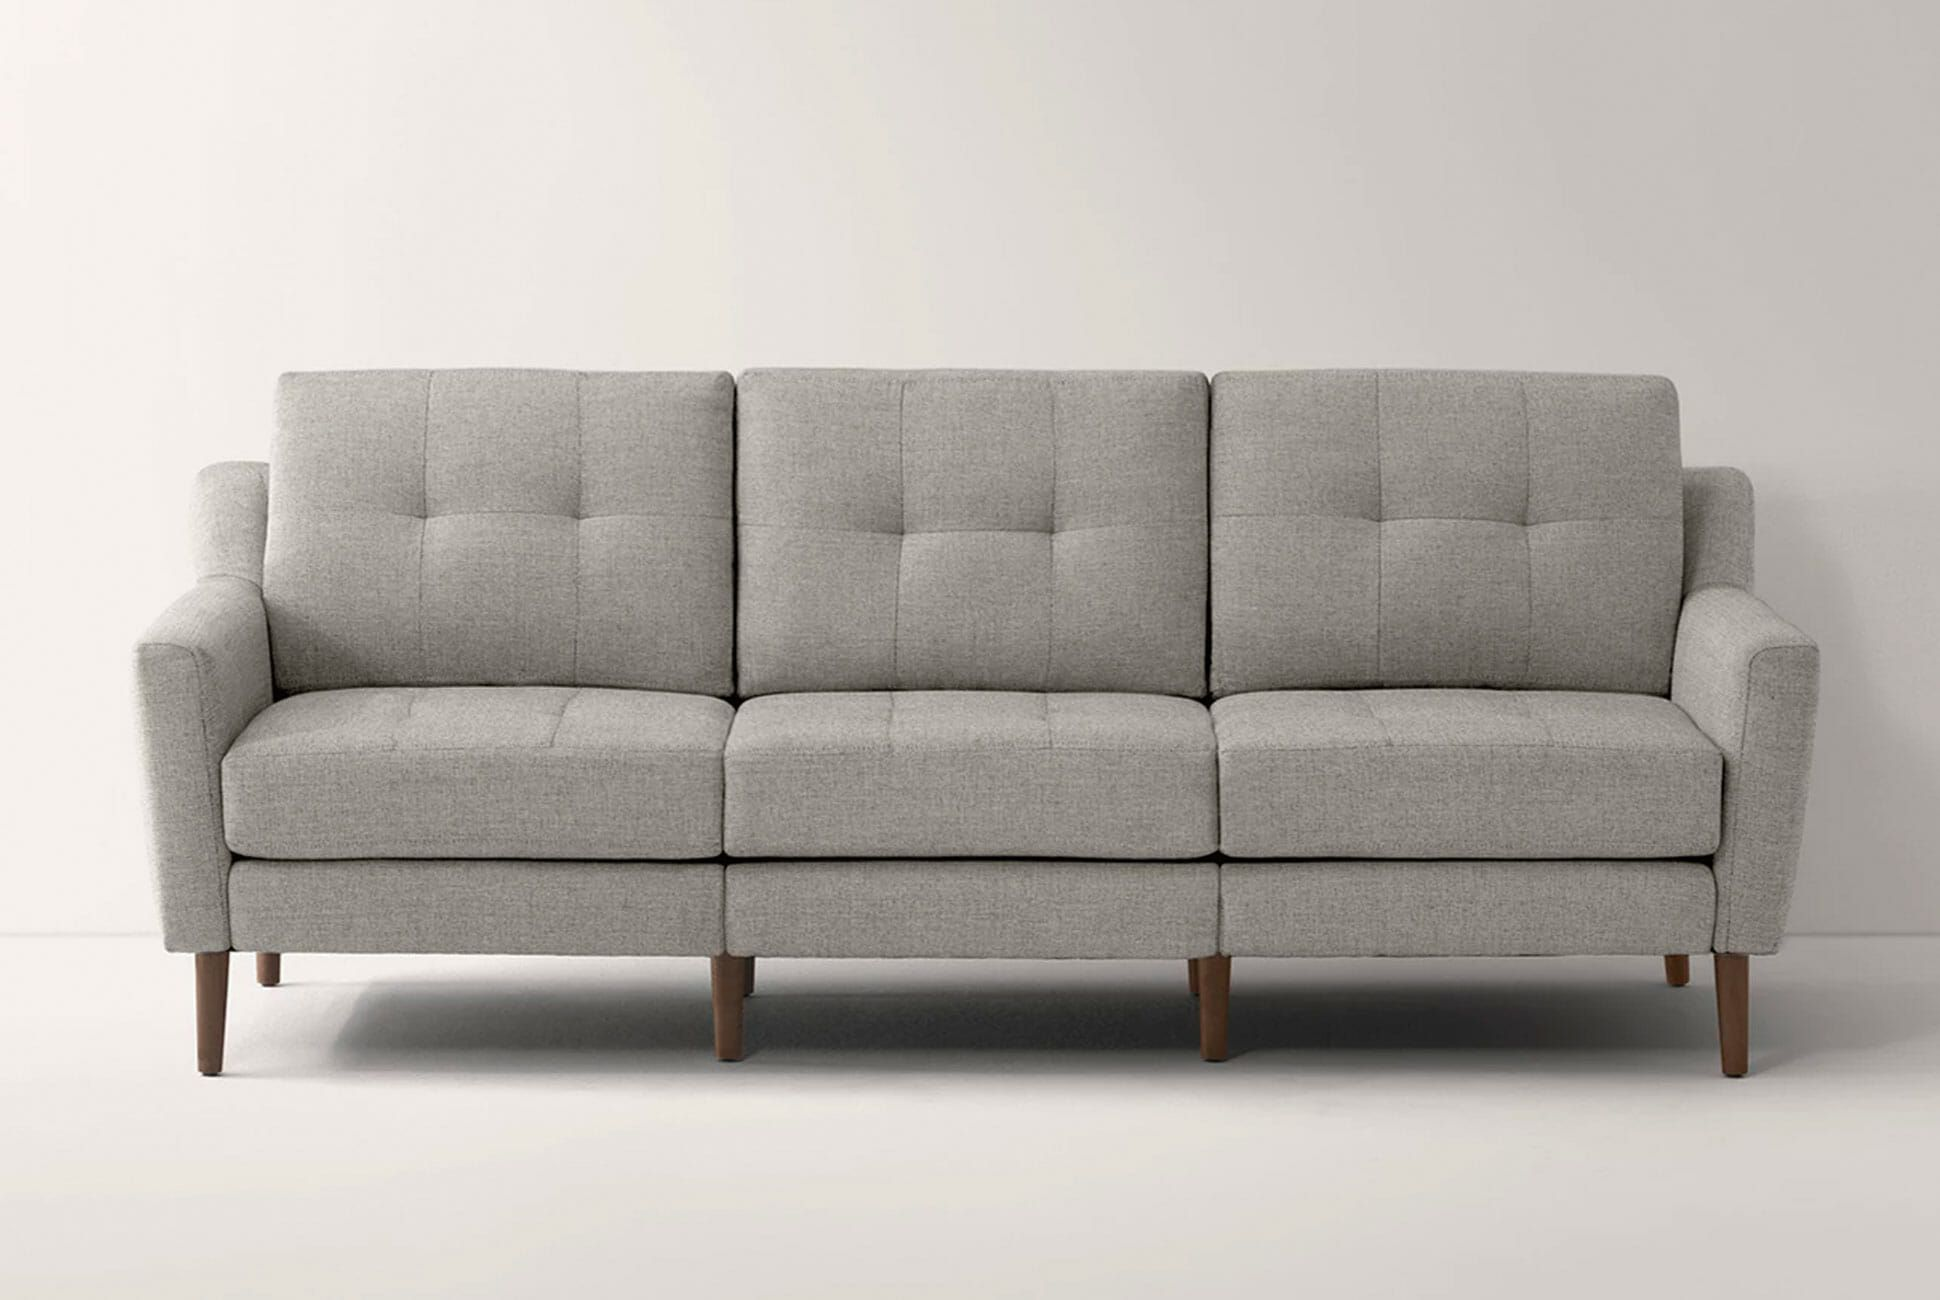 Made Sofa Reviews The 16 Best Sofas And Couches You Can Buy In 2019 Gear Patrol